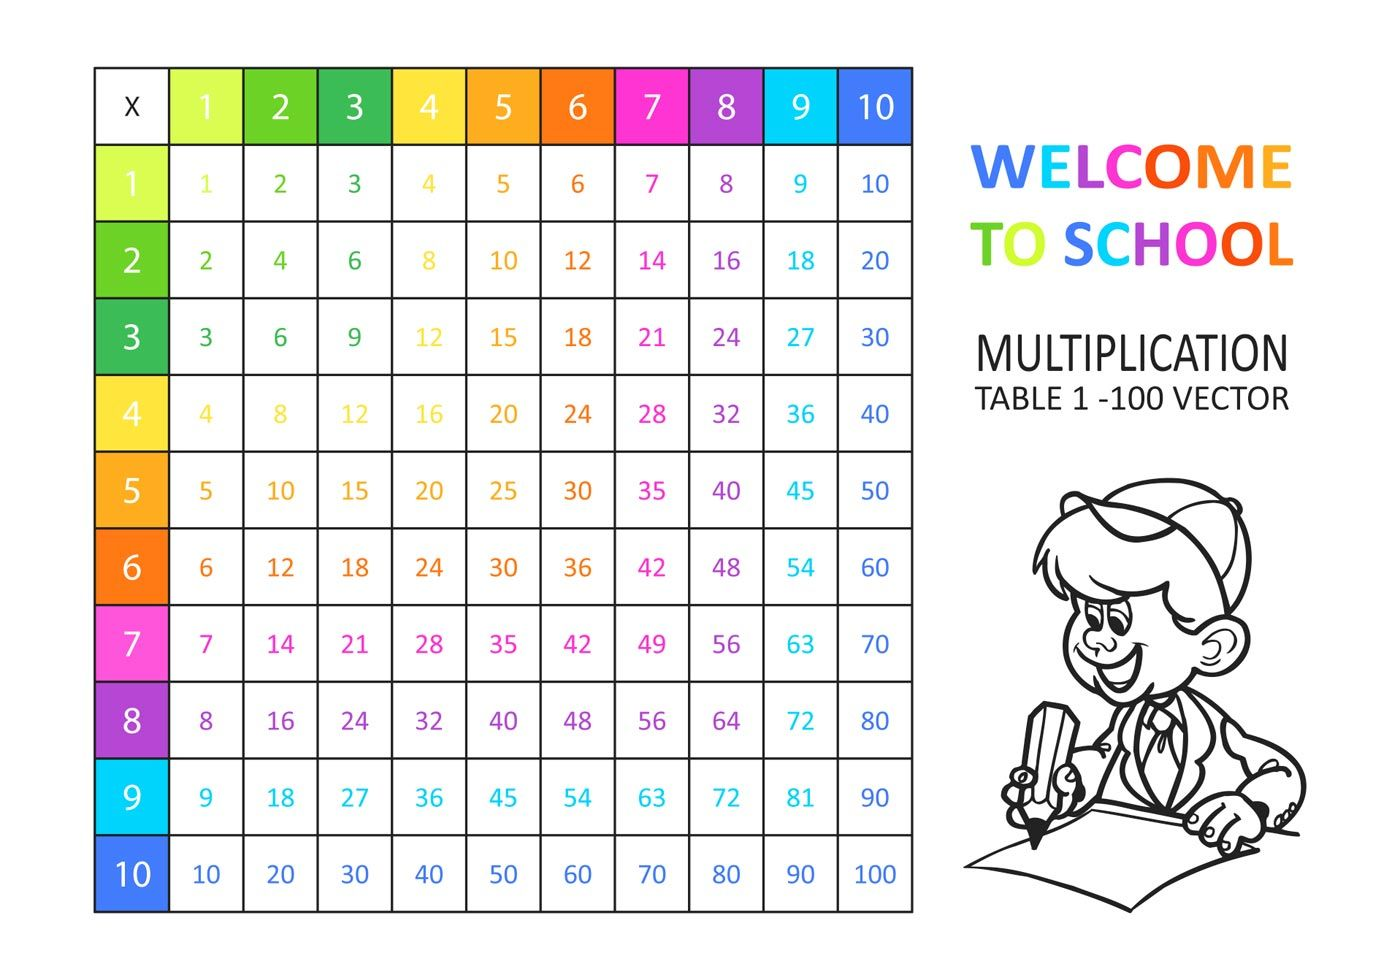 Multiplication table 25x25 images periodic table images multiples table 1 100 images all properties of math worksheets on free vector multiplication tablejpg 1400980 gamestrikefo Gallery